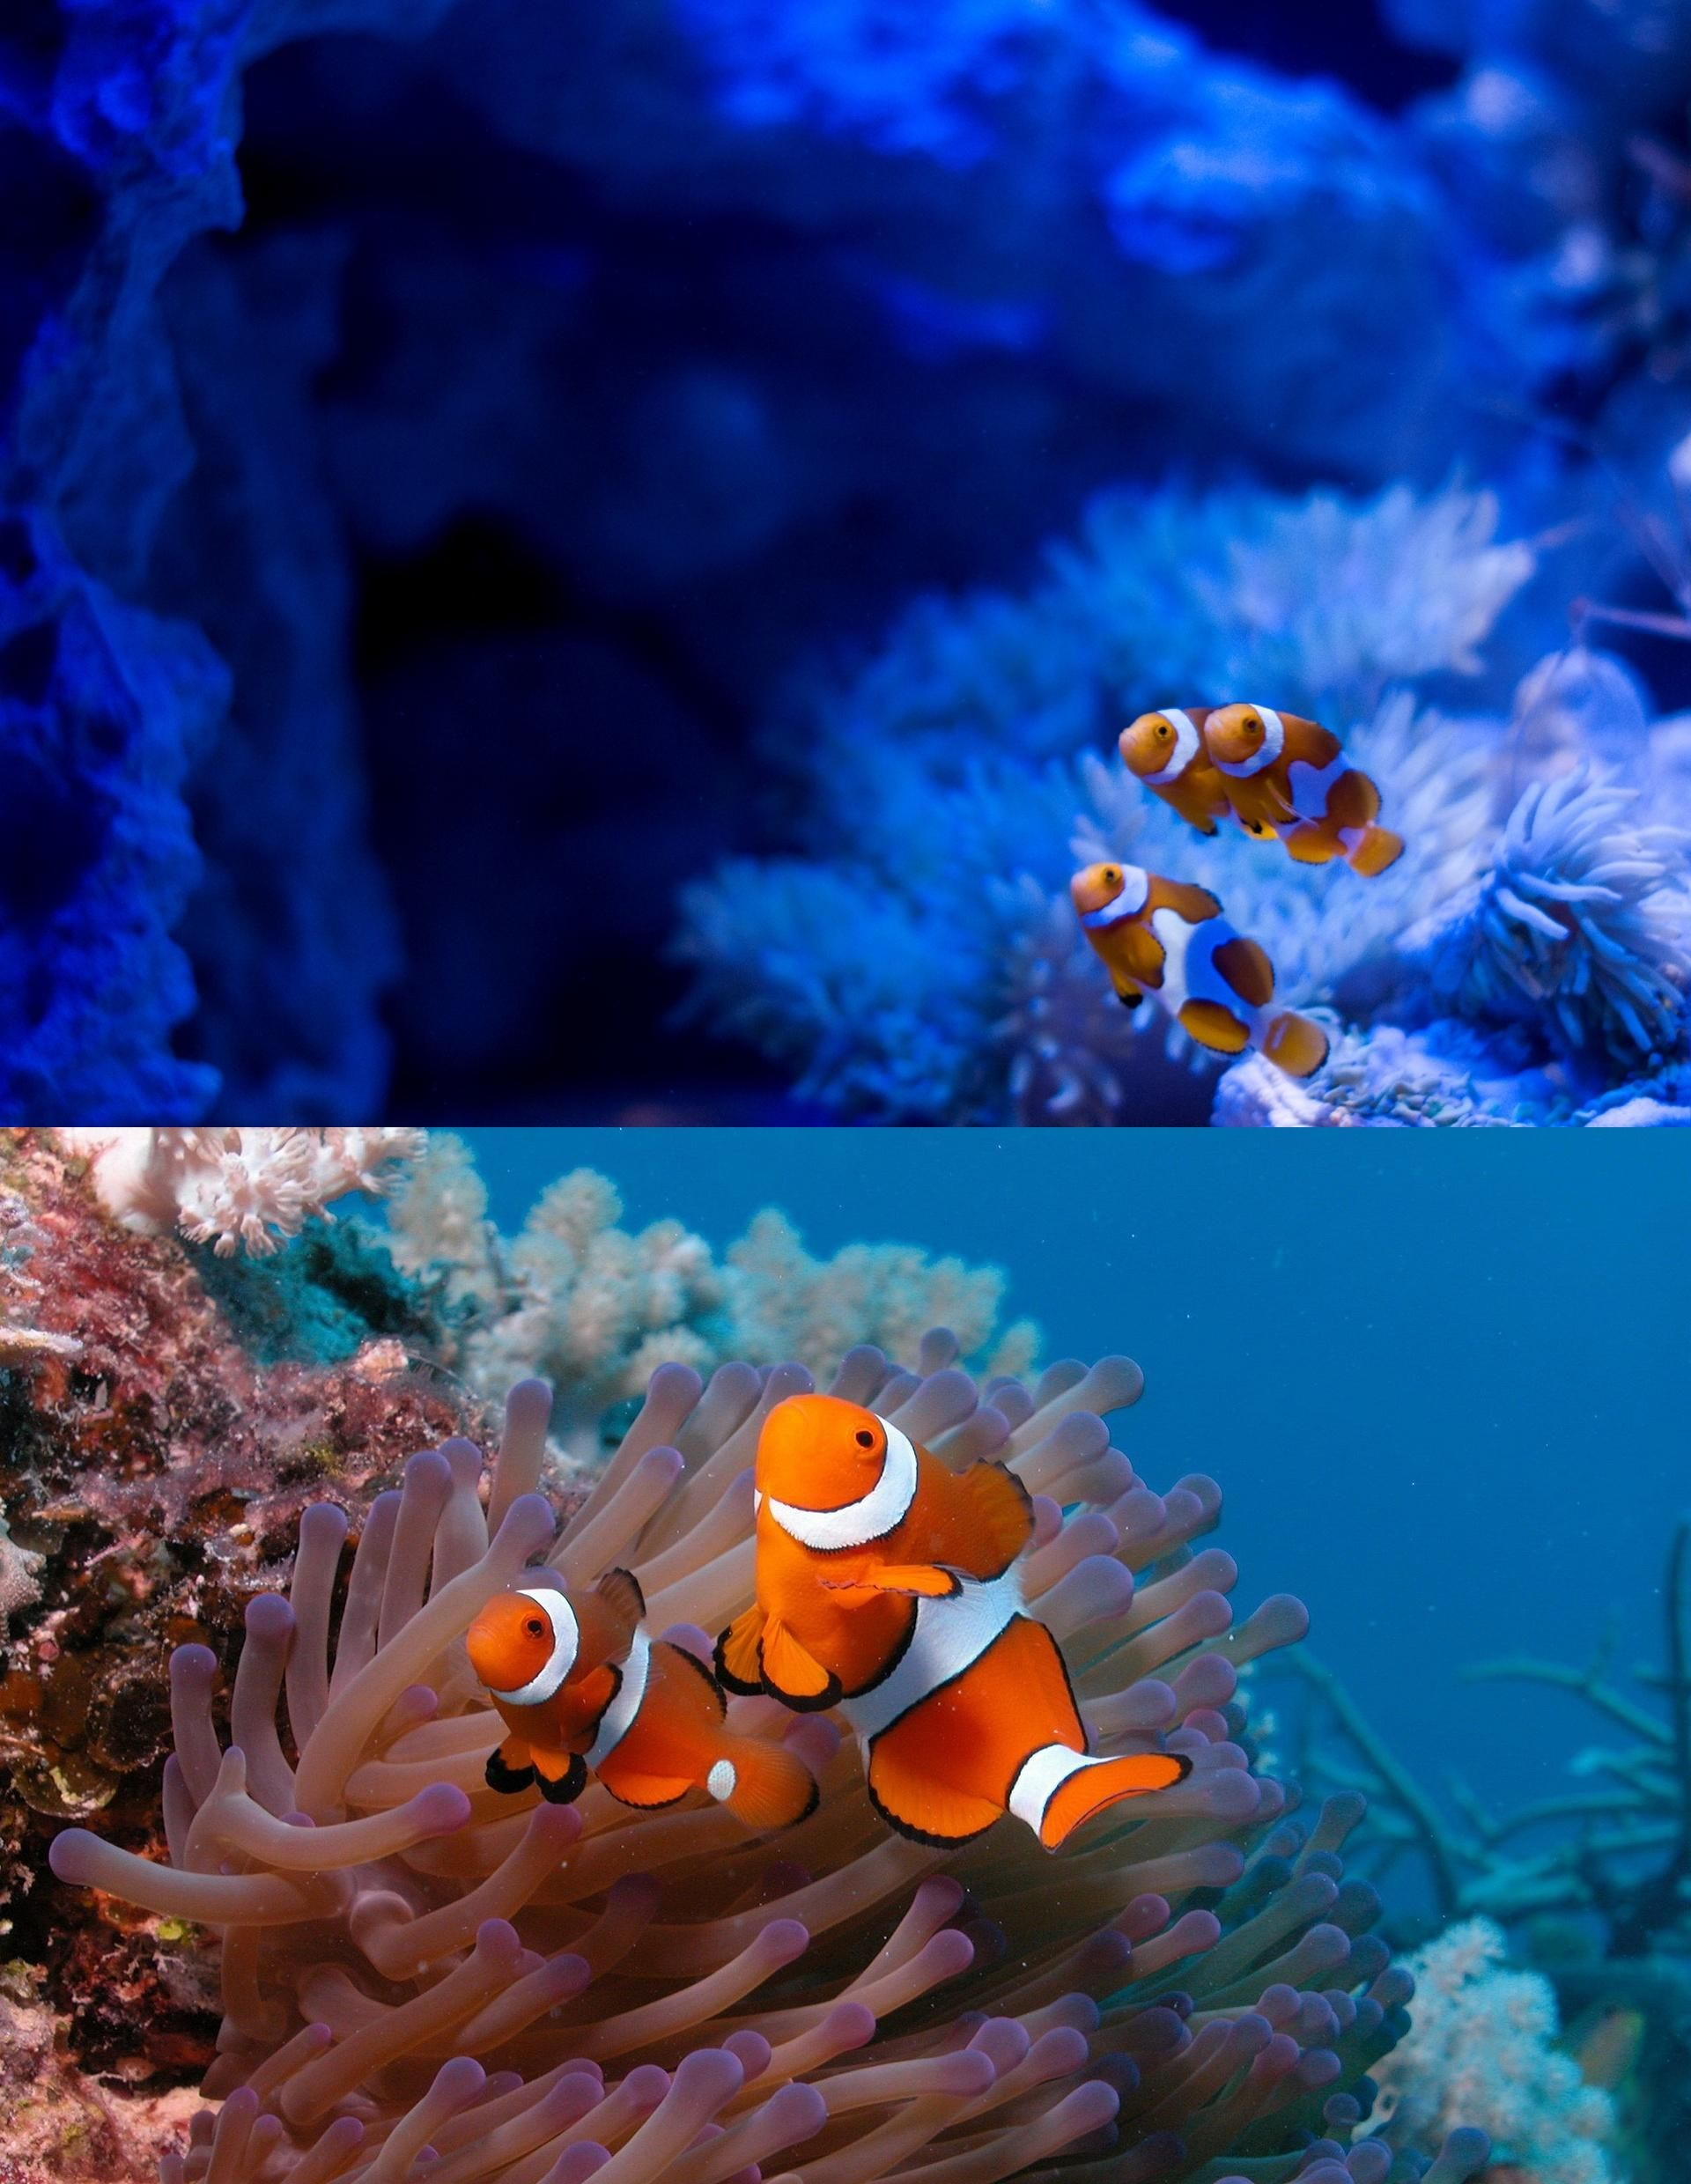 Animals Download 96 689 Wallpapers Page 1 Forwallpaper Com Animals Clown Fish Fish